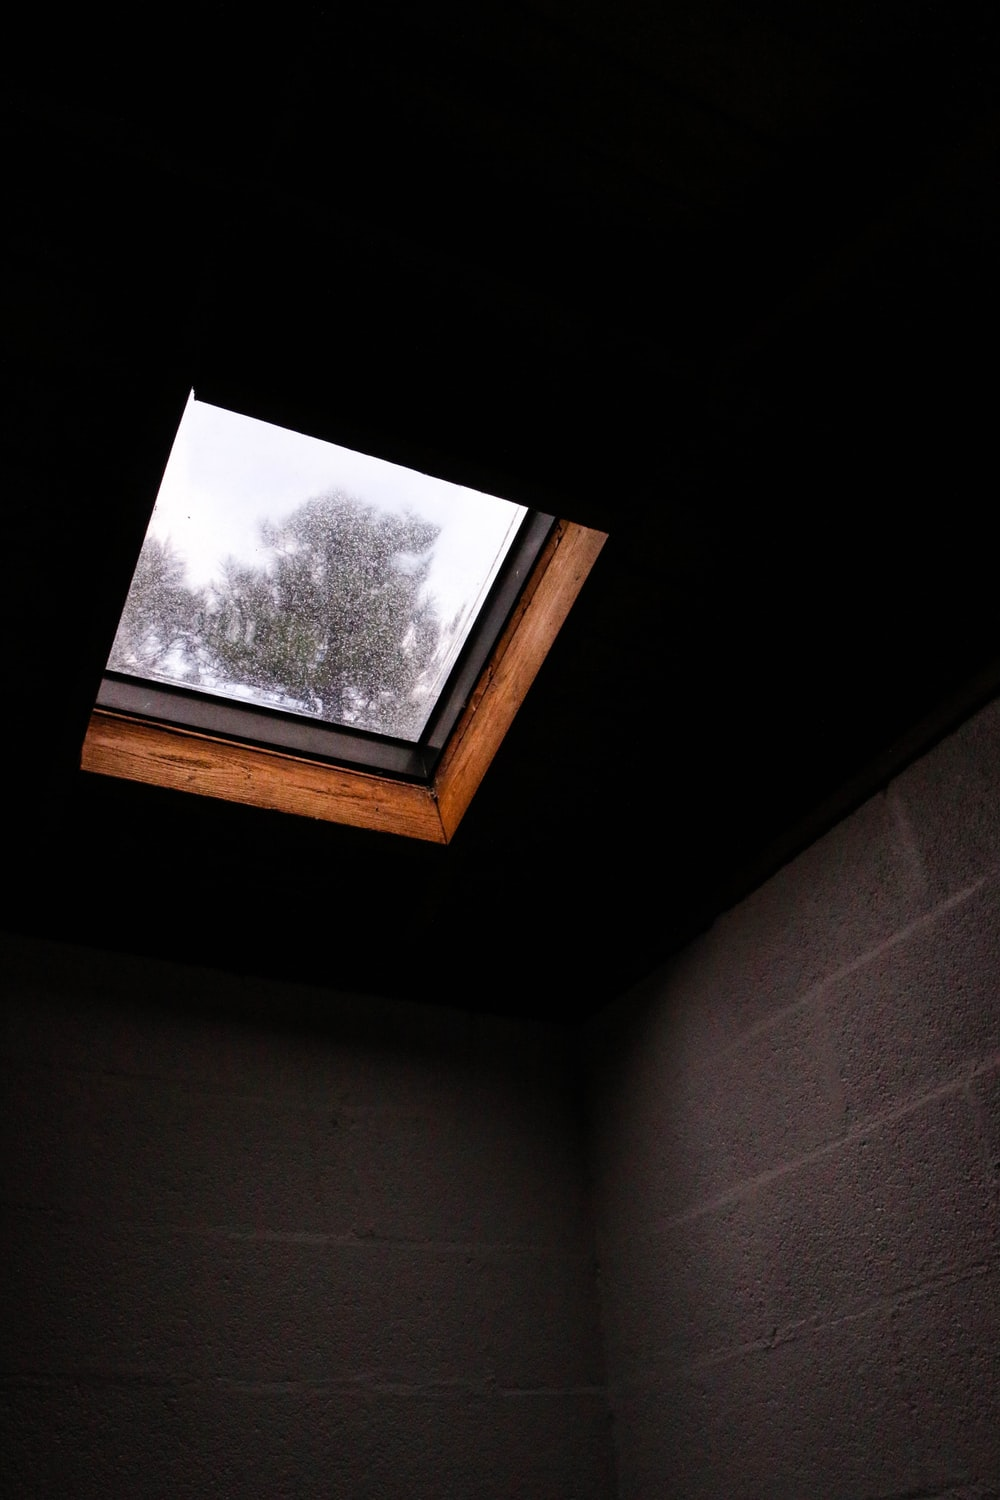 brown concrete wall under roof window inside room